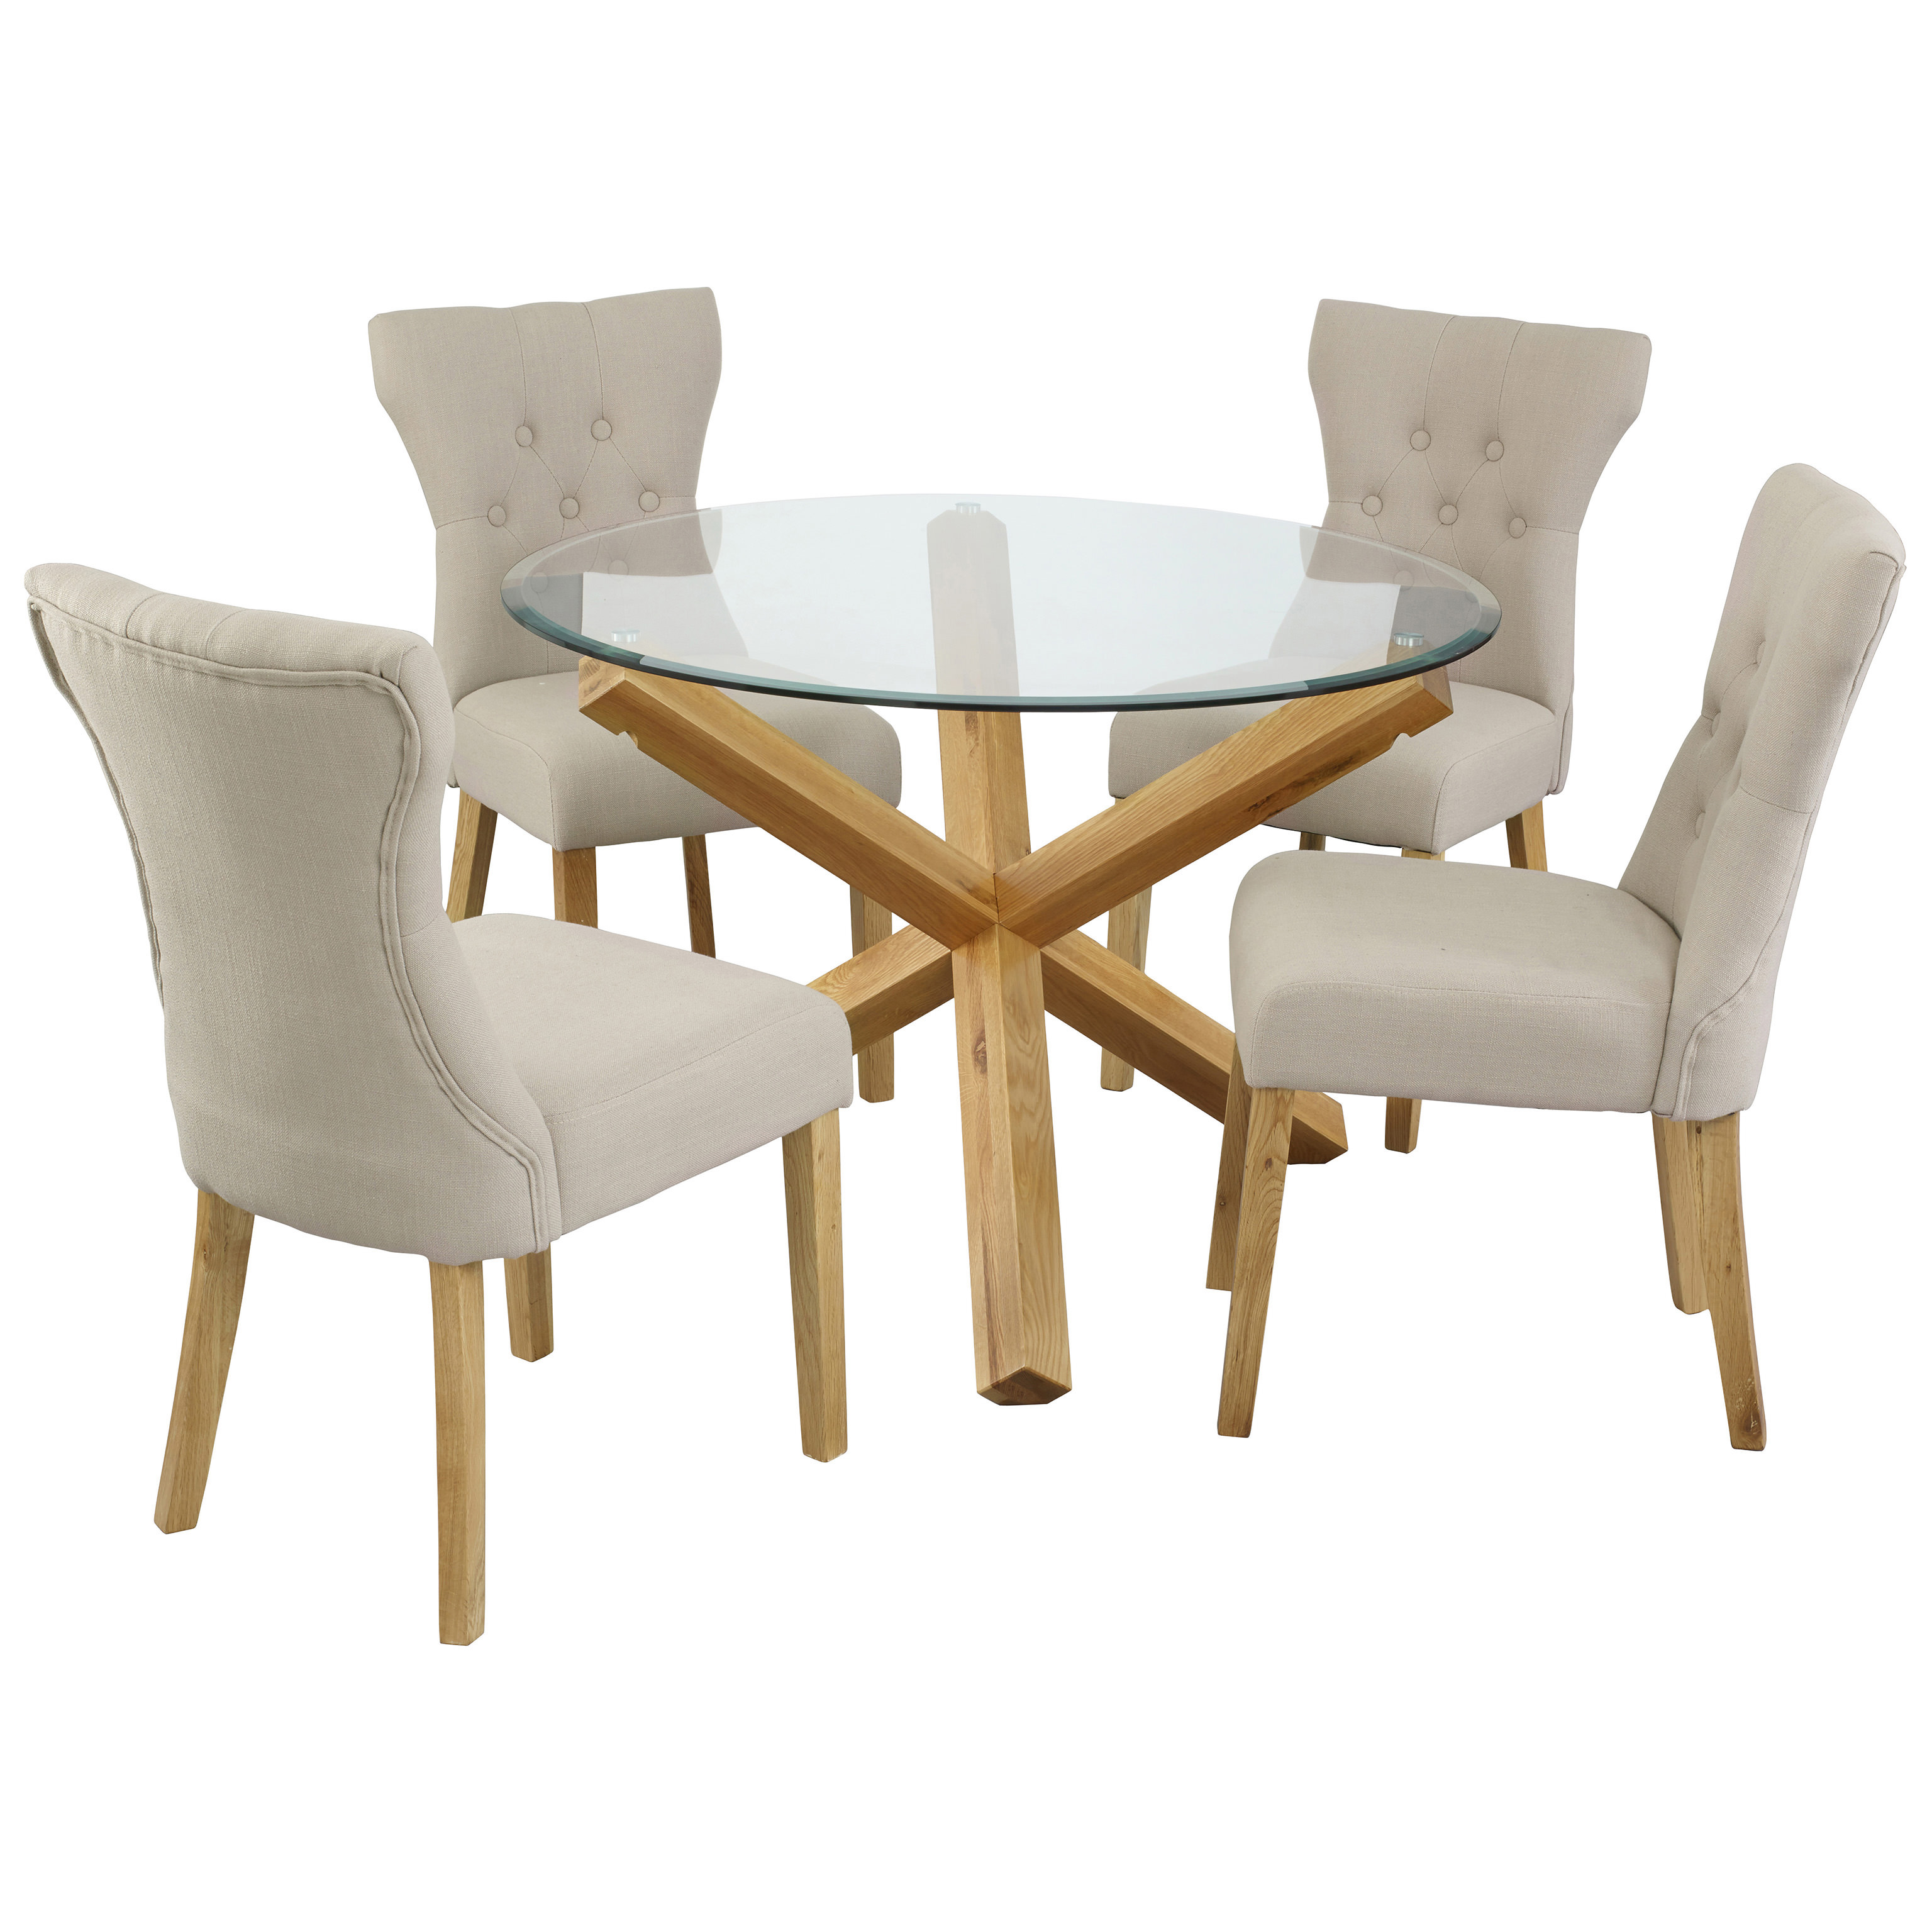 circle table and chair set adirondack chairs polywood oak glass round dining with 4 fabric